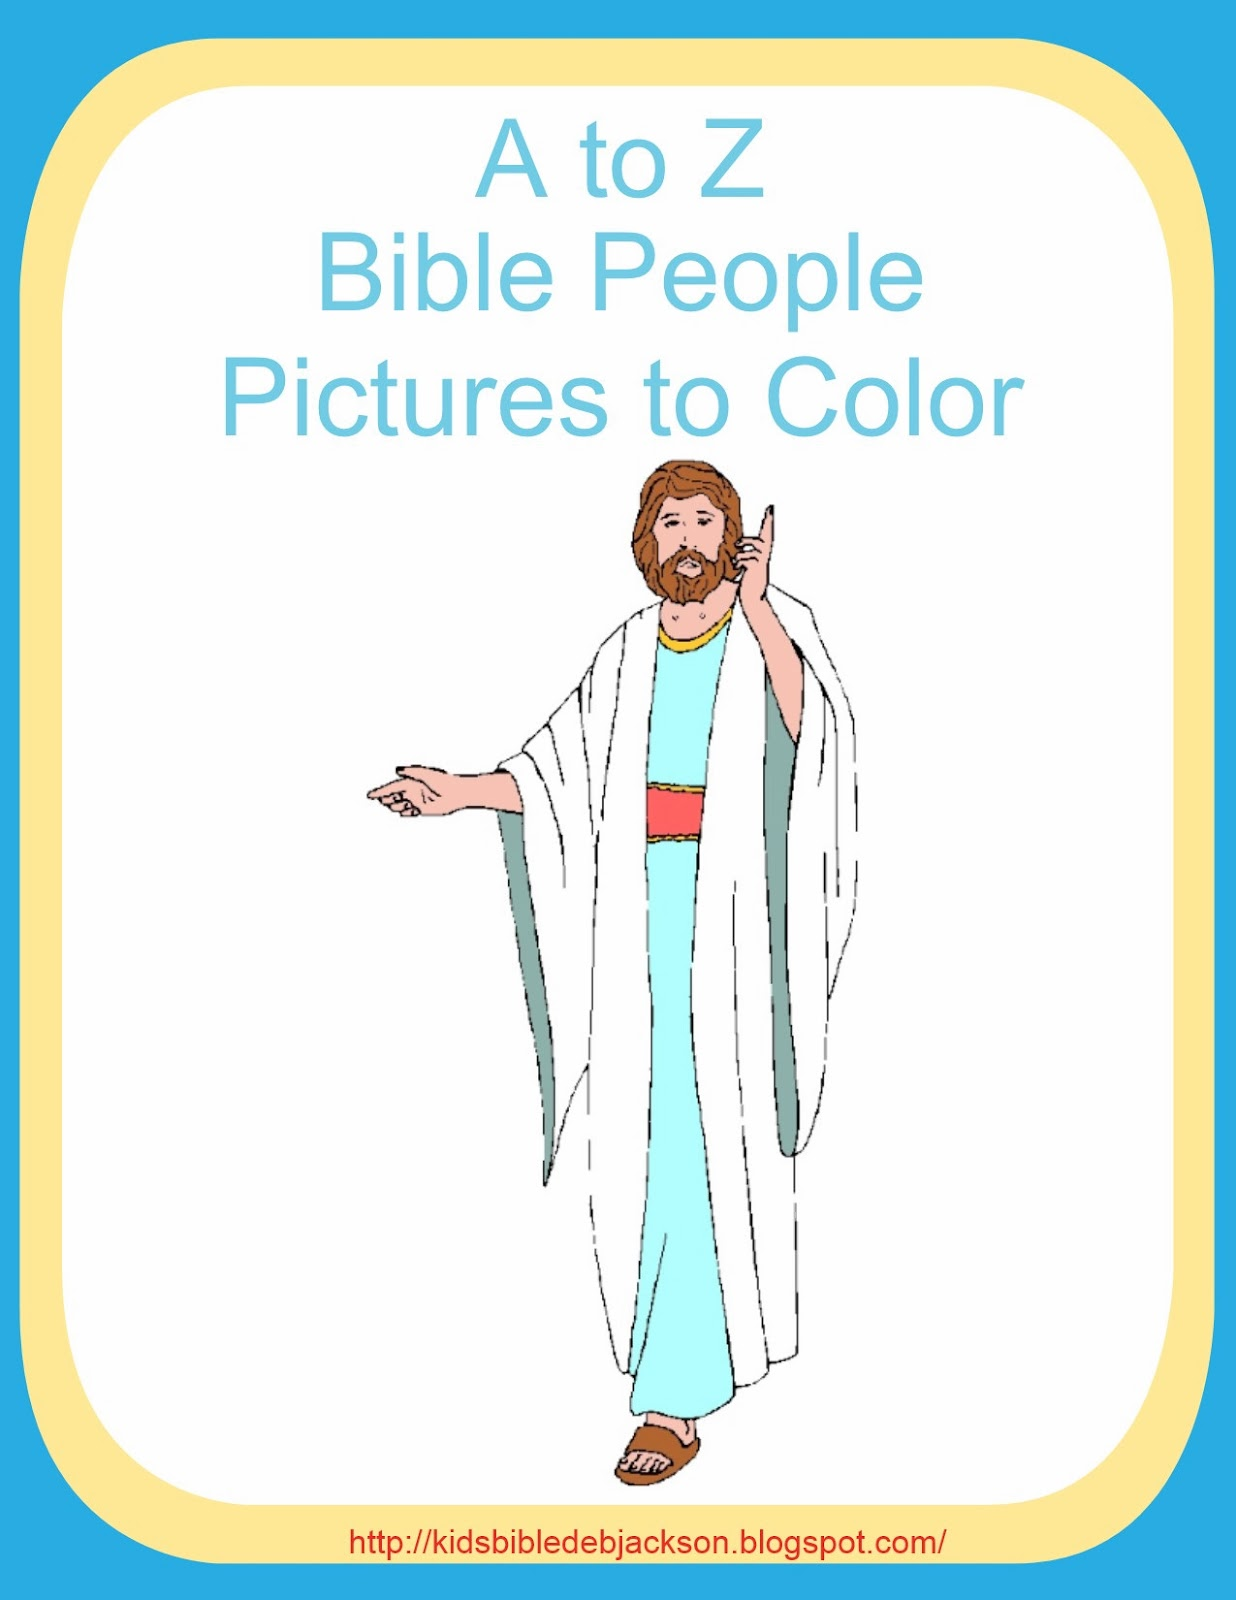 http://kidsbibledebjackson.blogspot.com/2012/12/a-to-z-bible-people-pictures-to-color.html